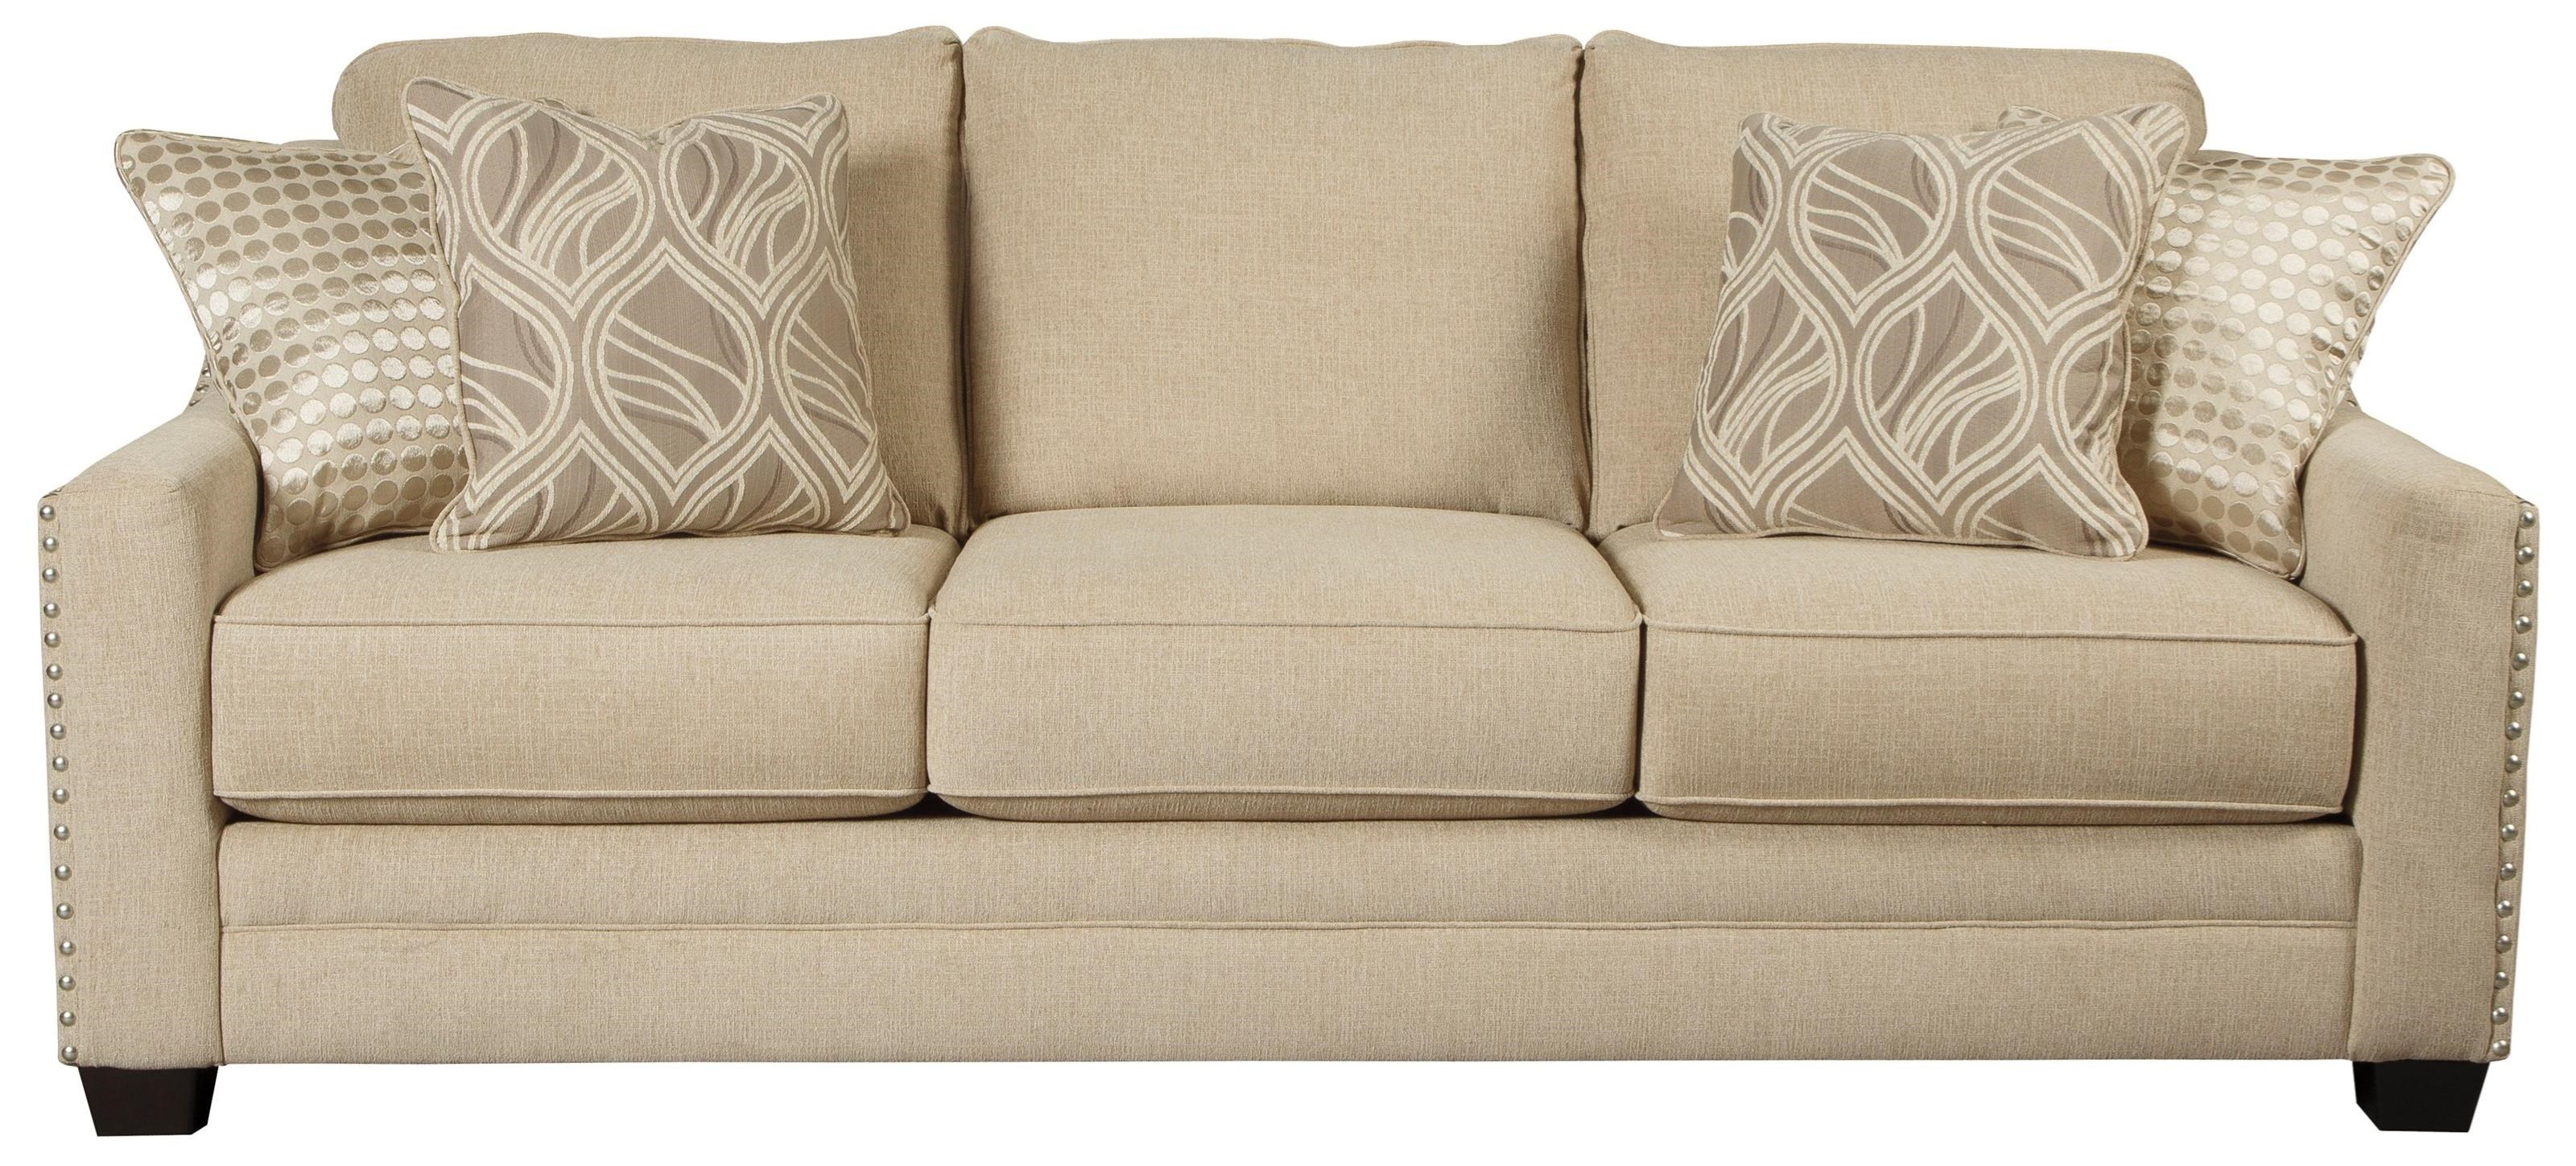 Ashley/Benchcraft Mauricio Sofa - Item Number: 8160138